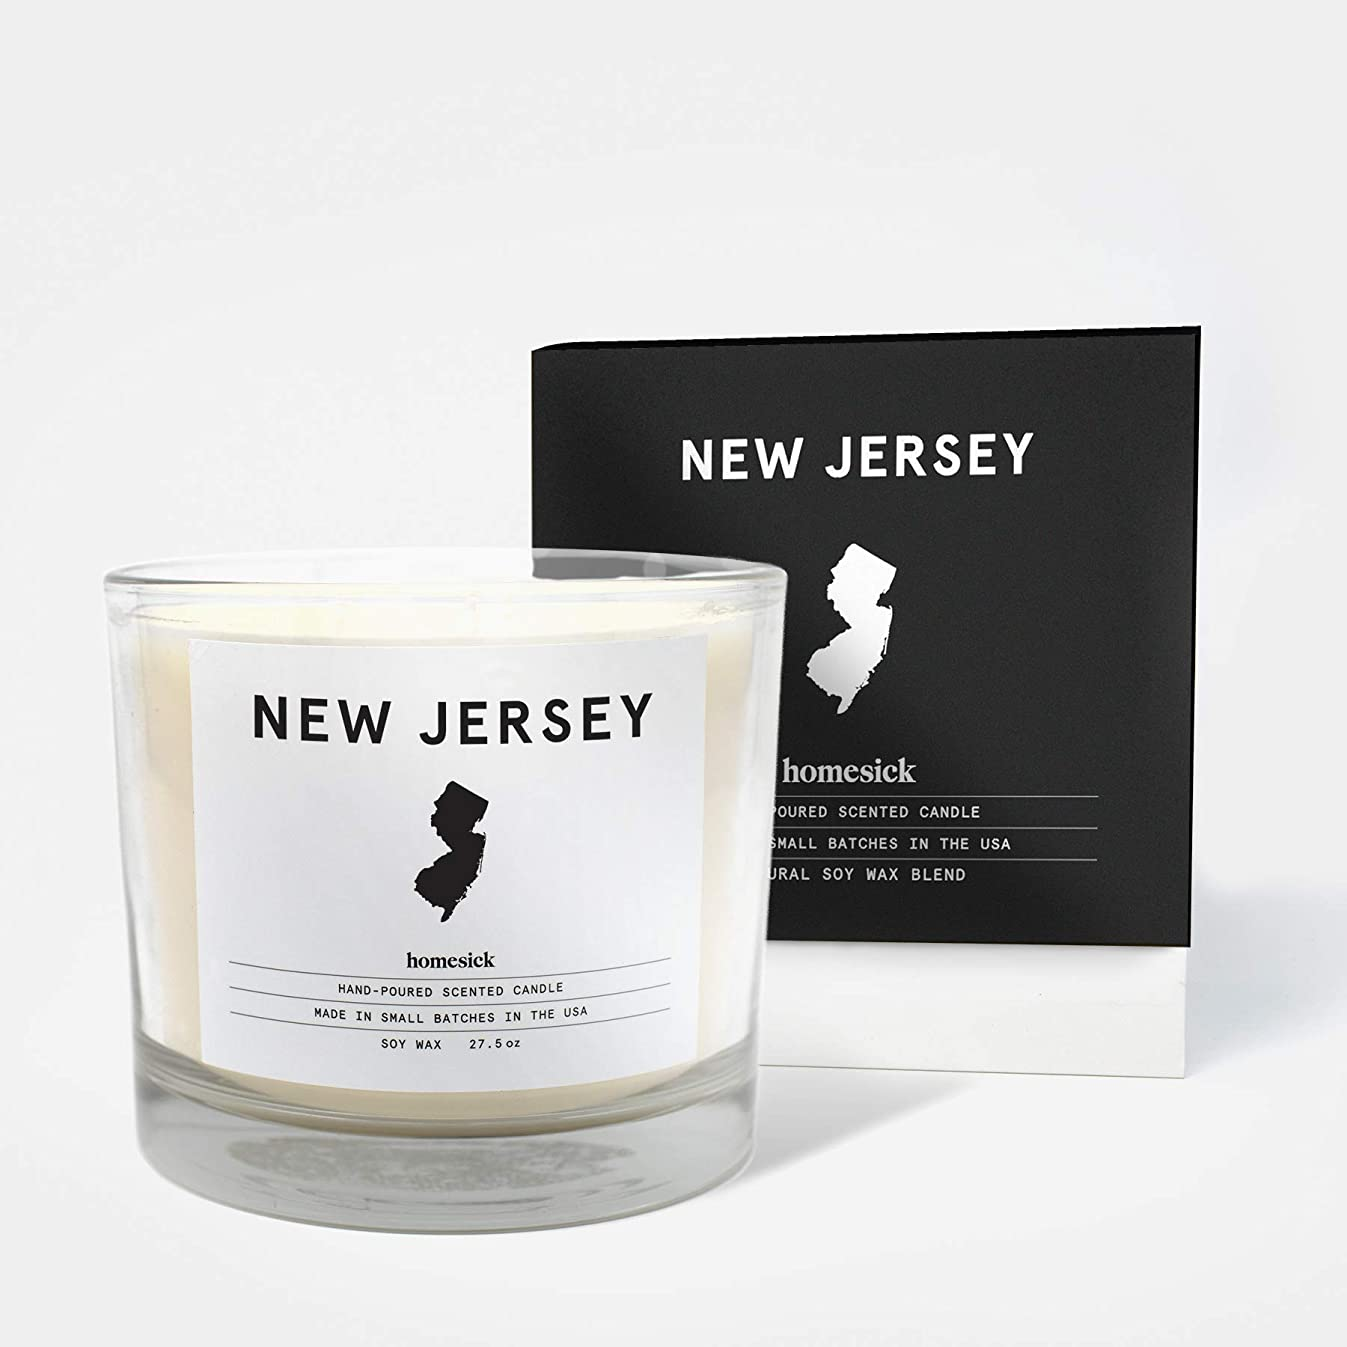 Homesick 3 Wick Scented Candle, Soy Wax - 27.5 oz (90 to 110 hrs Burn Time) New Jersey